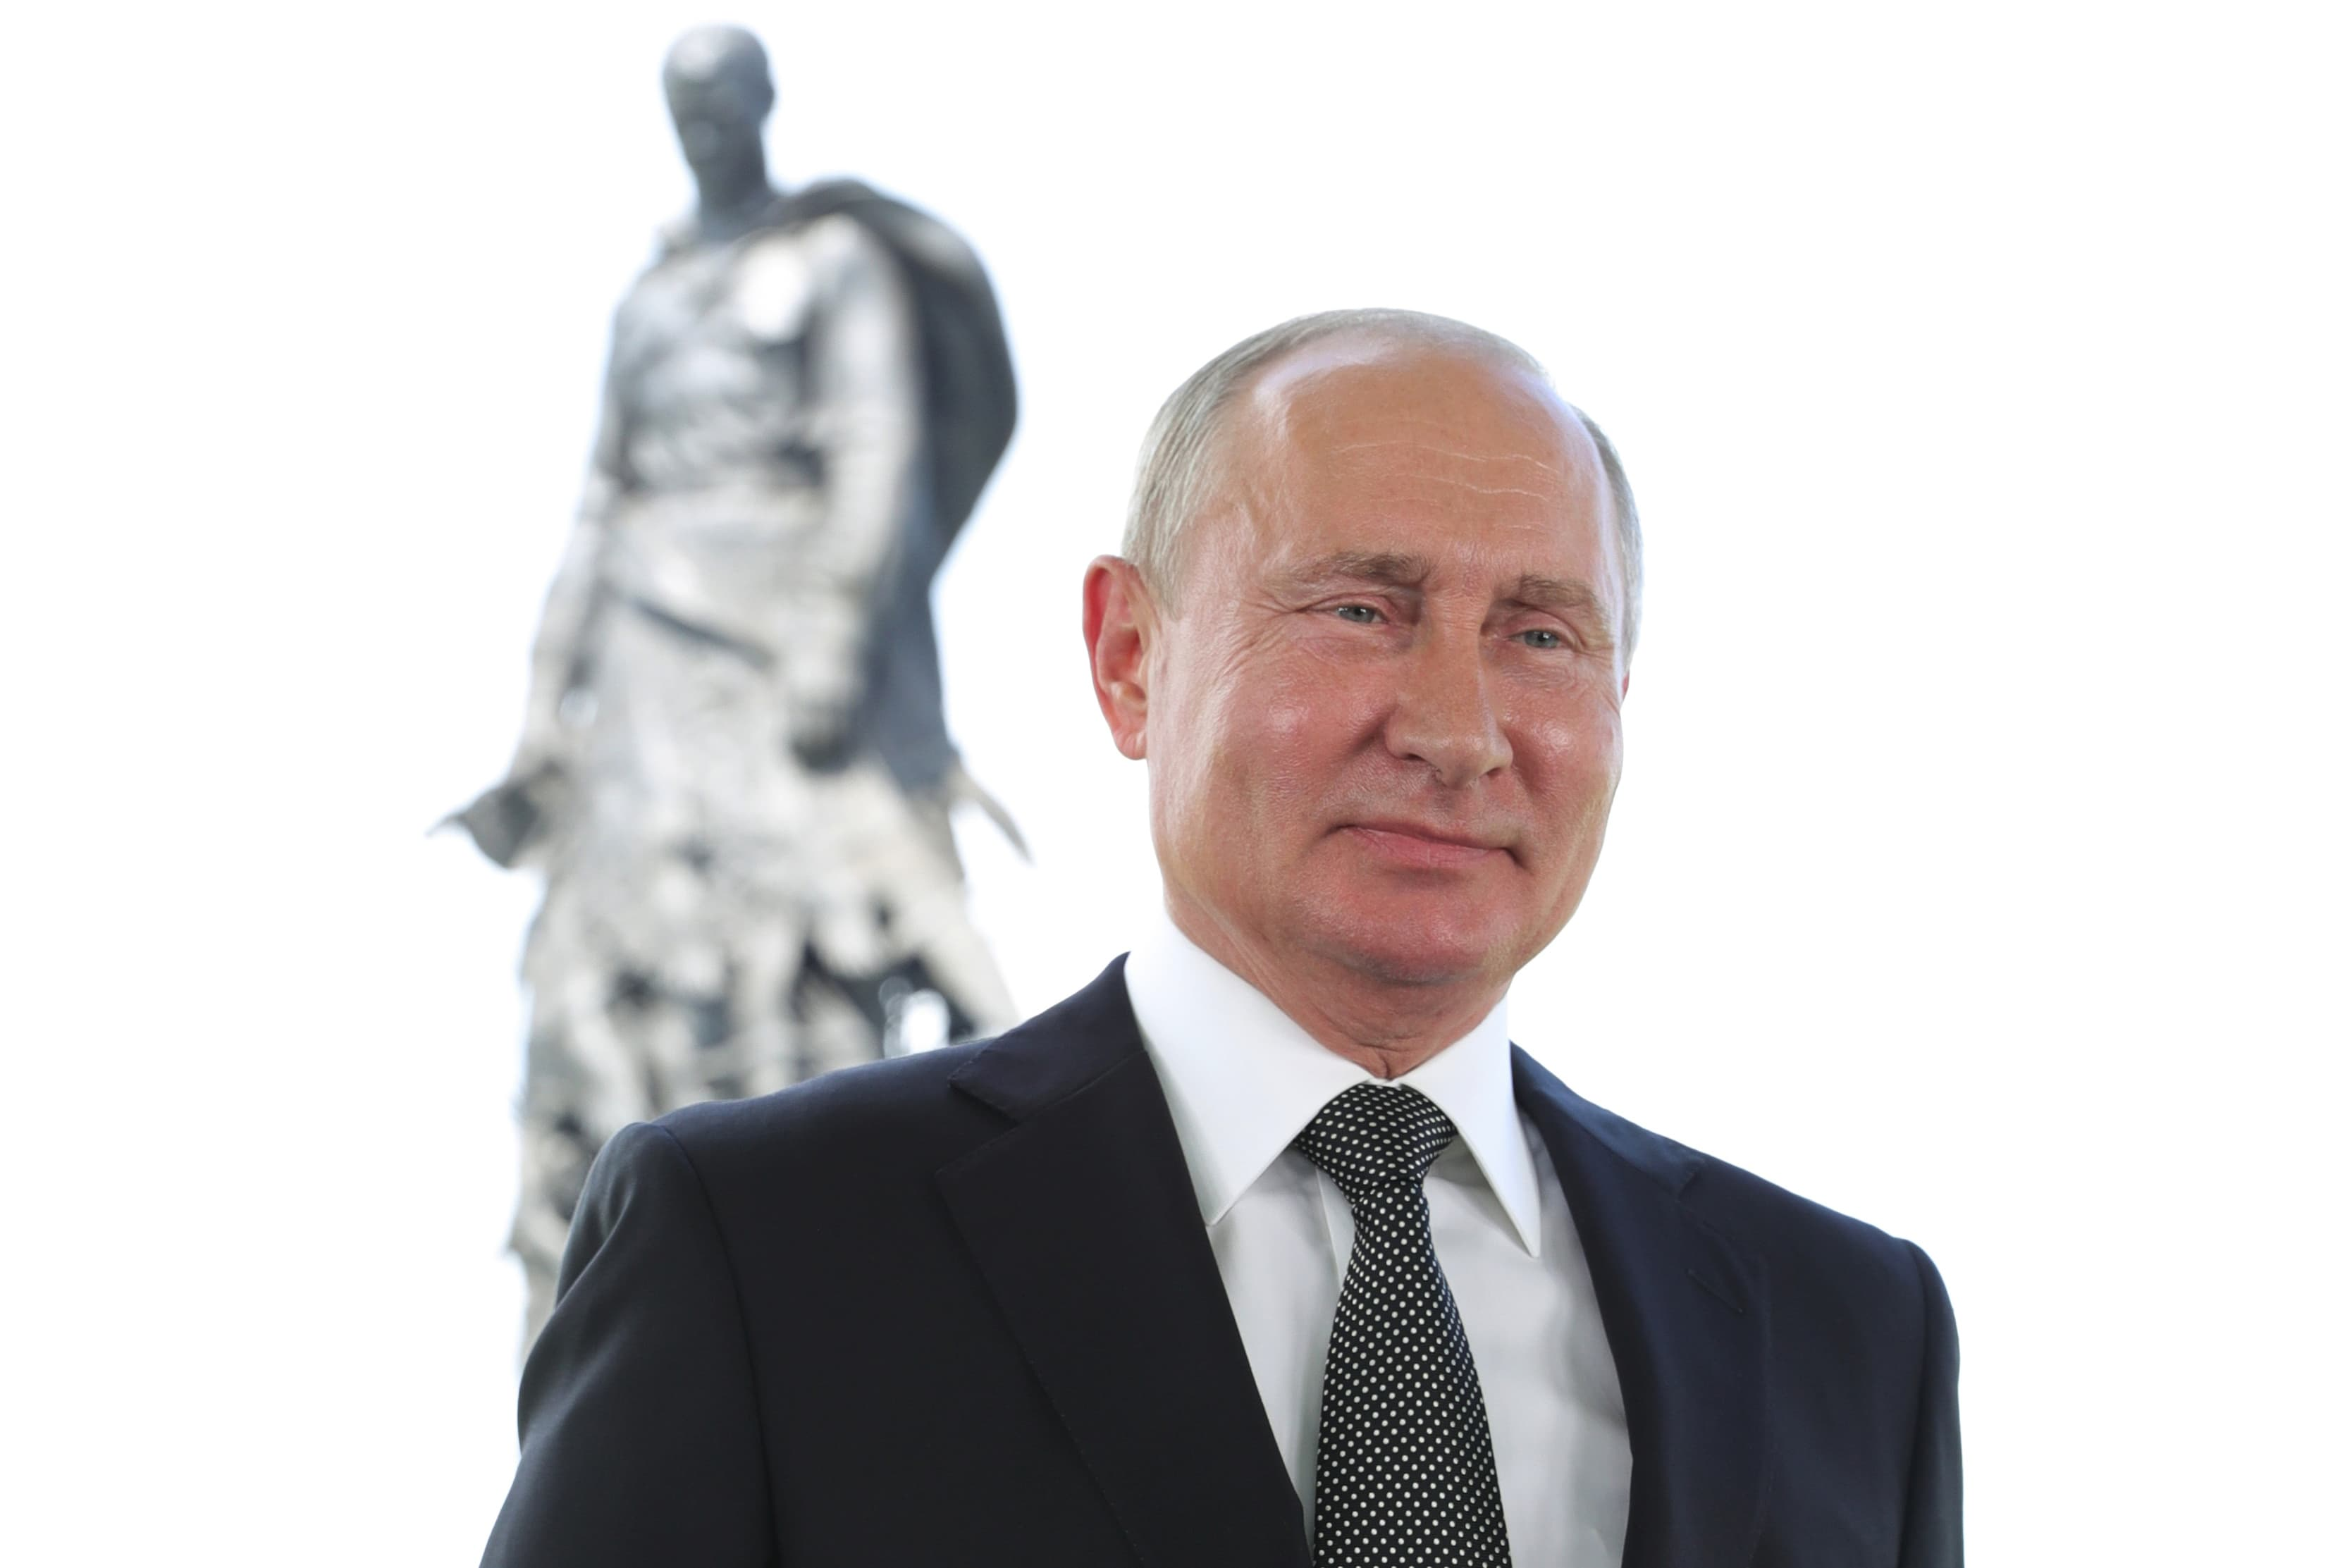 Russians give Putin the chance to stay in power until 2036 after historic vote – CNBC